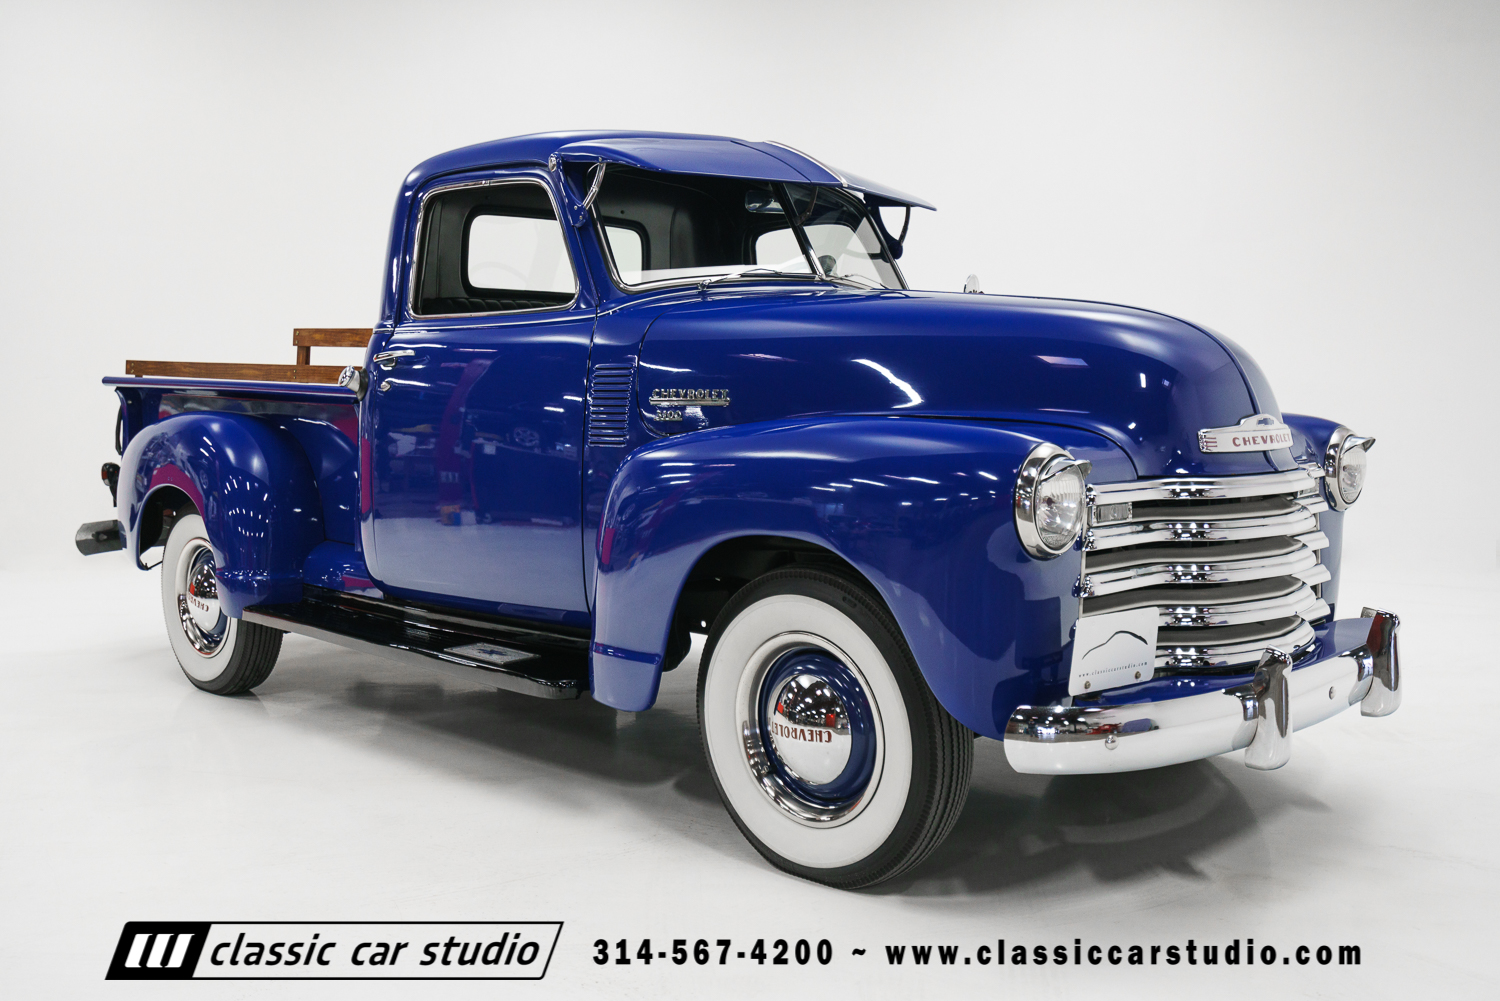 1950 Chevrolet 3100 Pickup Classic Car Studio